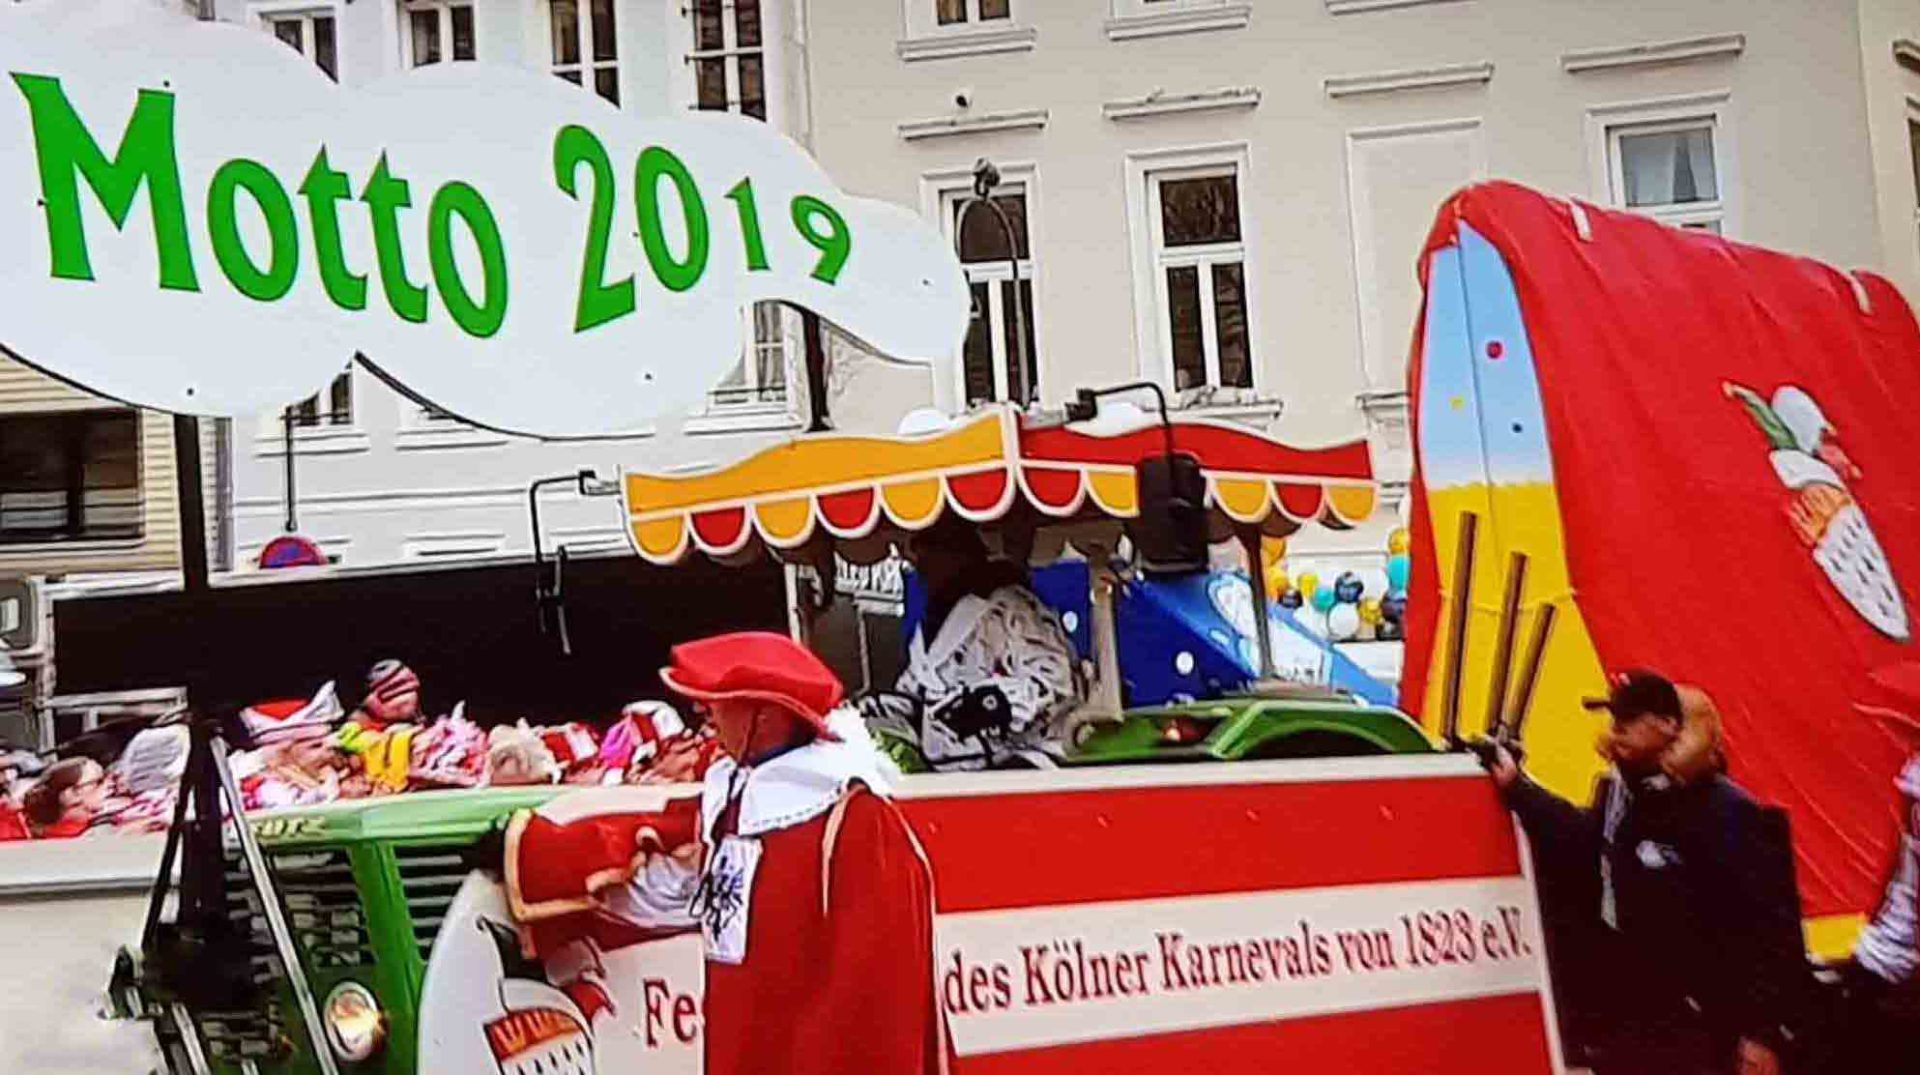 das war der rosenmontagszug in k ln motto der session 2019 steht fest. Black Bedroom Furniture Sets. Home Design Ideas